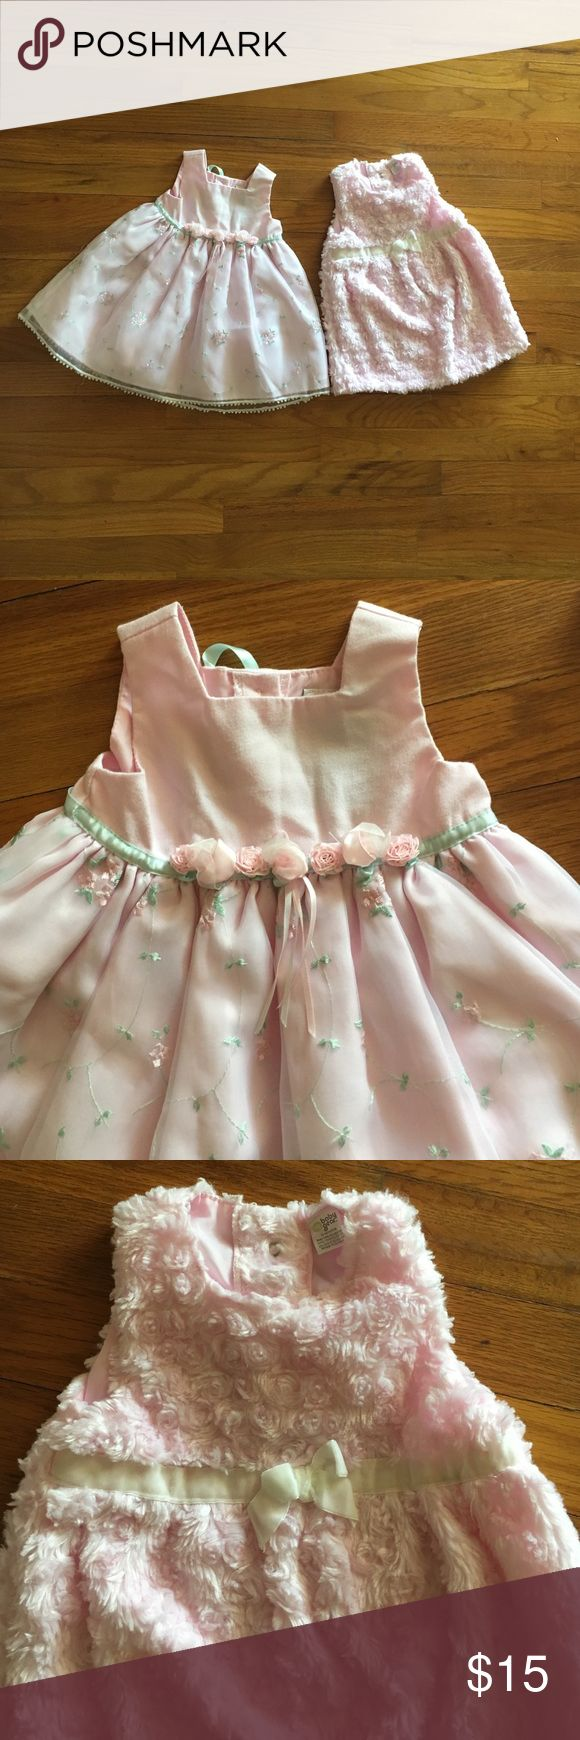 😍Pink baby girl dresses😍 Two beautiful pink special occasion dresses. Gently used only once. Both are size 12 months. Open to offers or bundle for a discount. Dresses Formal